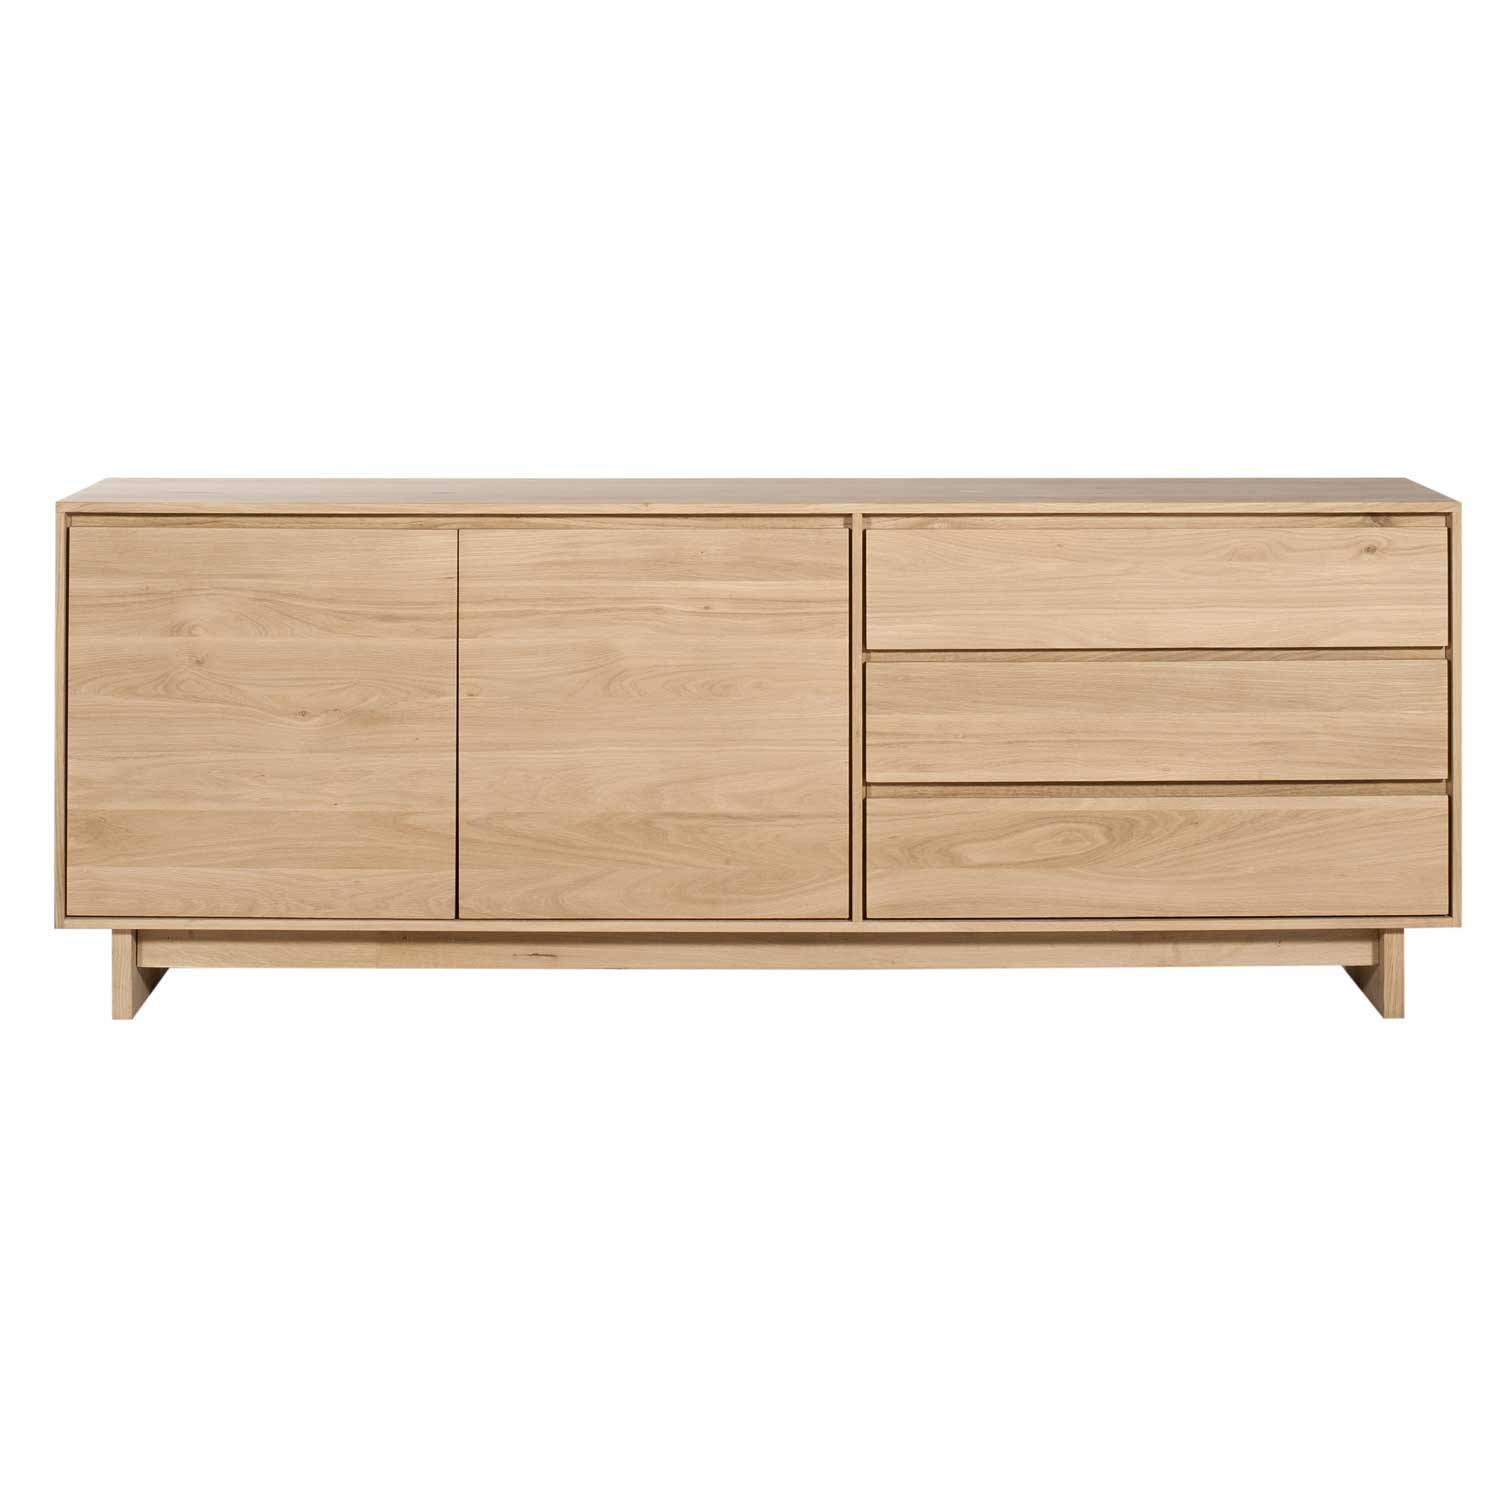 Wood Buffet Sideboards And Buffets Discount Online Furniture In Pertaining To Sideboards (View 20 of 20)